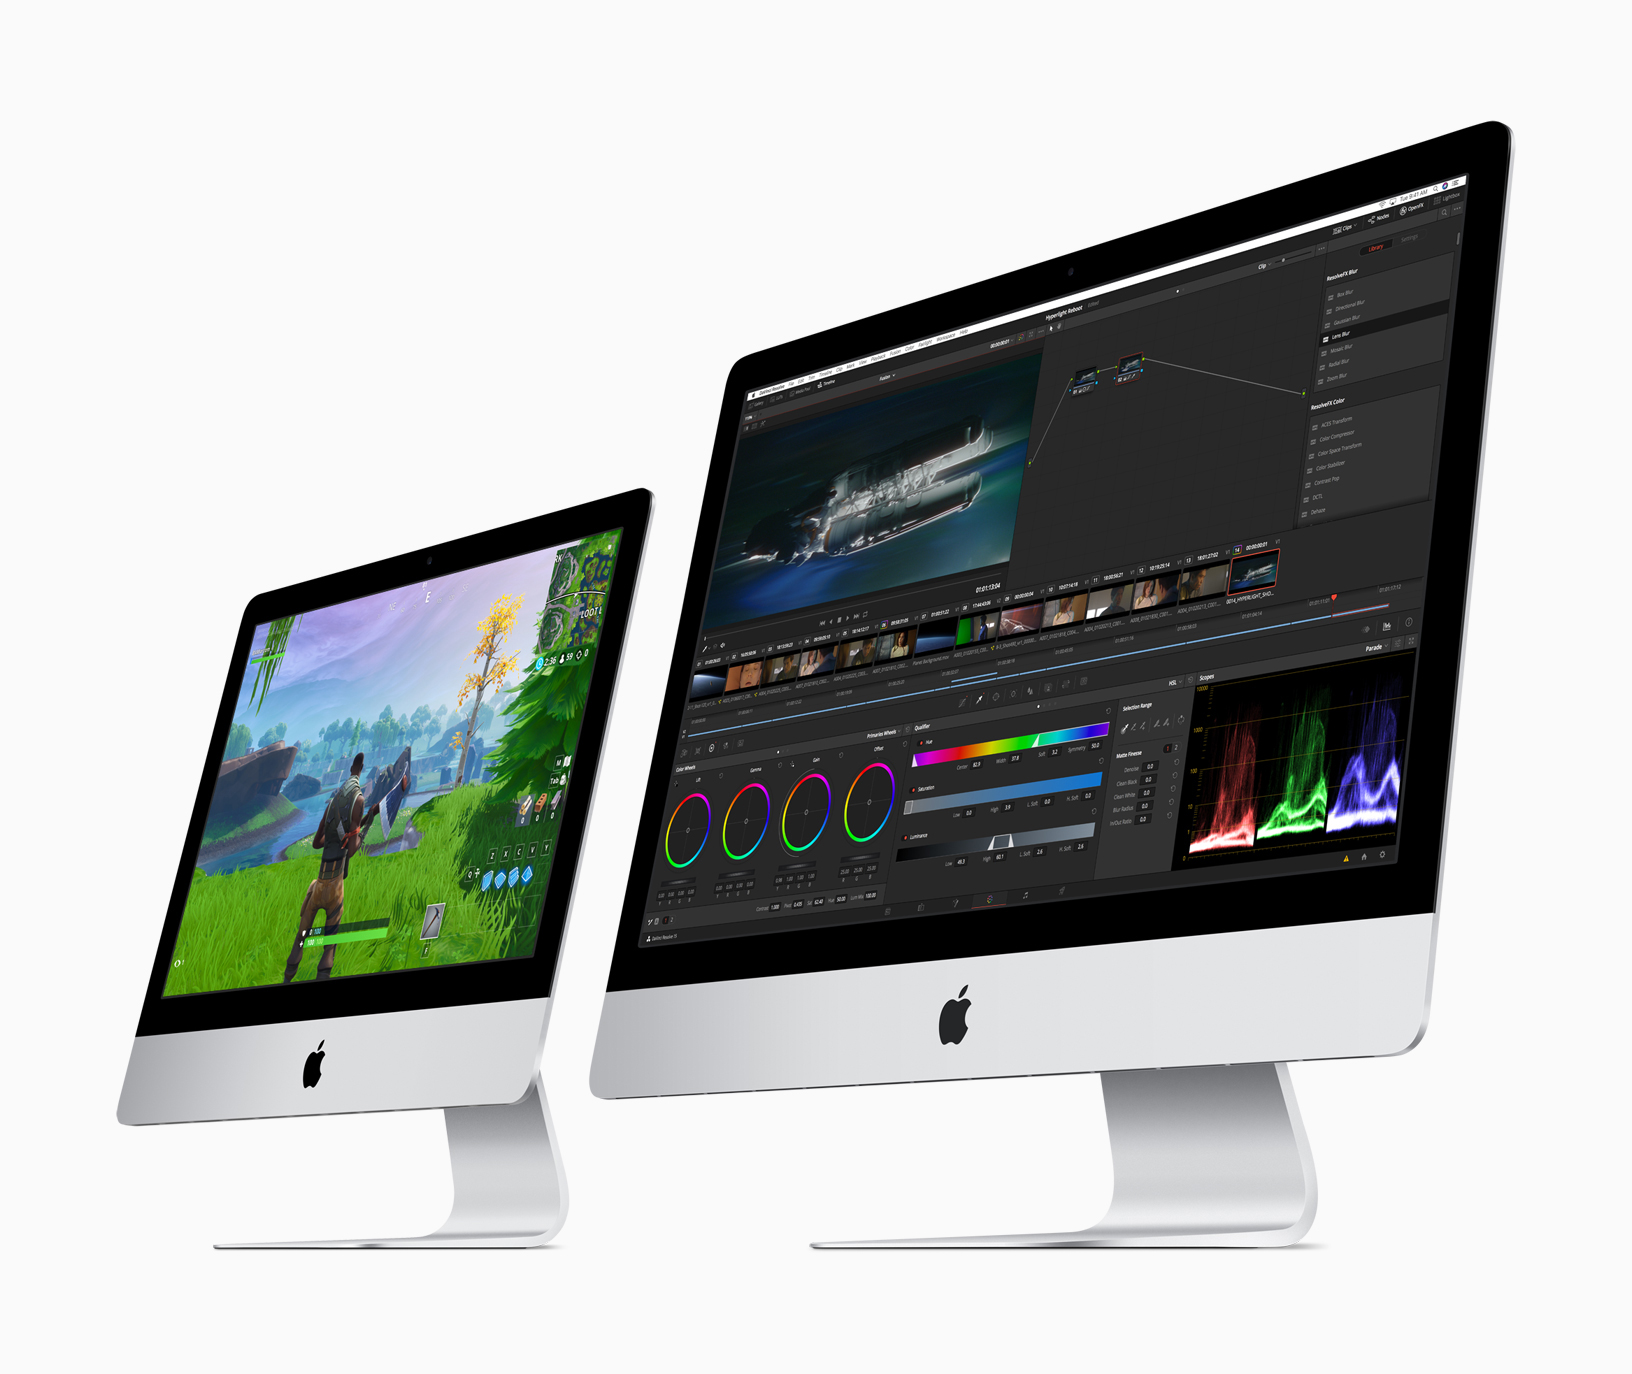 https://www.apple.com/newsroom/images/product/mac/standard/Apple-iMac-gets-2x-more-performance-21in-and-27in-03192019_big.jpg.large_2x.jpg